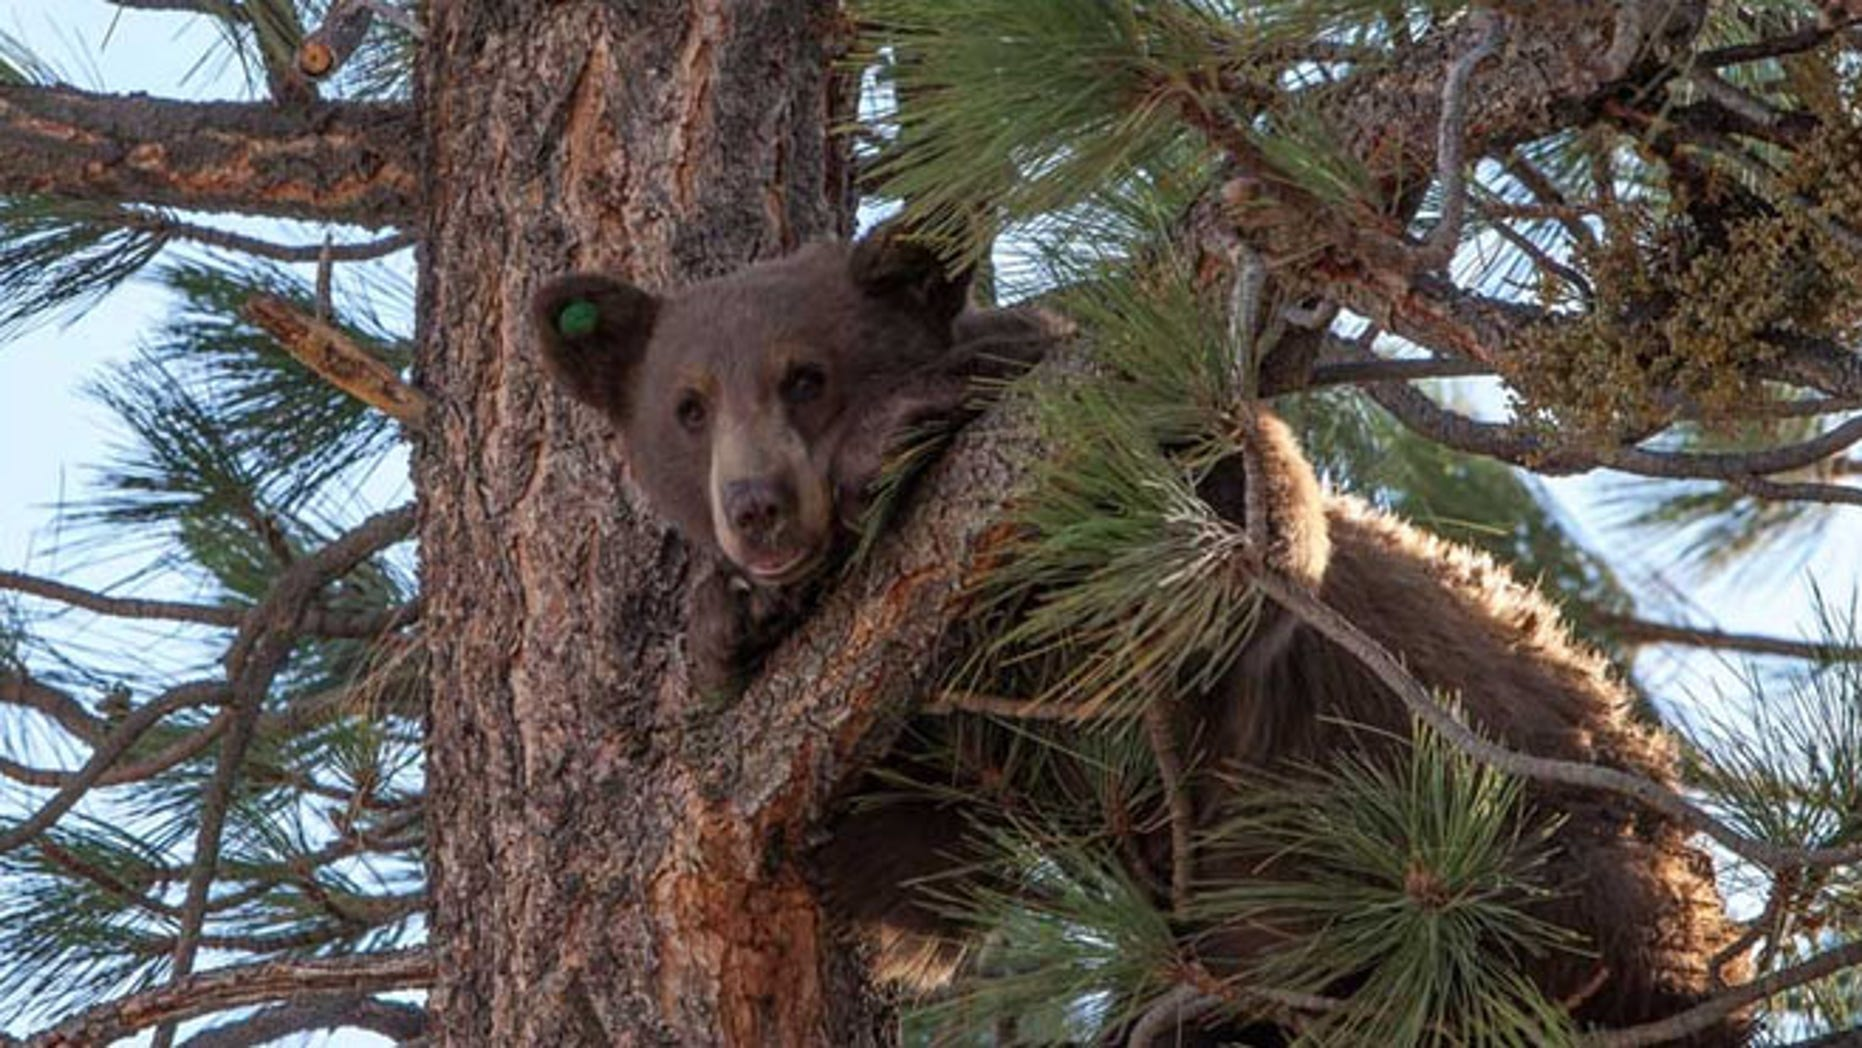 Aug 9, 2013: In this photo provided by Nevada Department of Wildlife, a yearling male black bear runs up a tree.